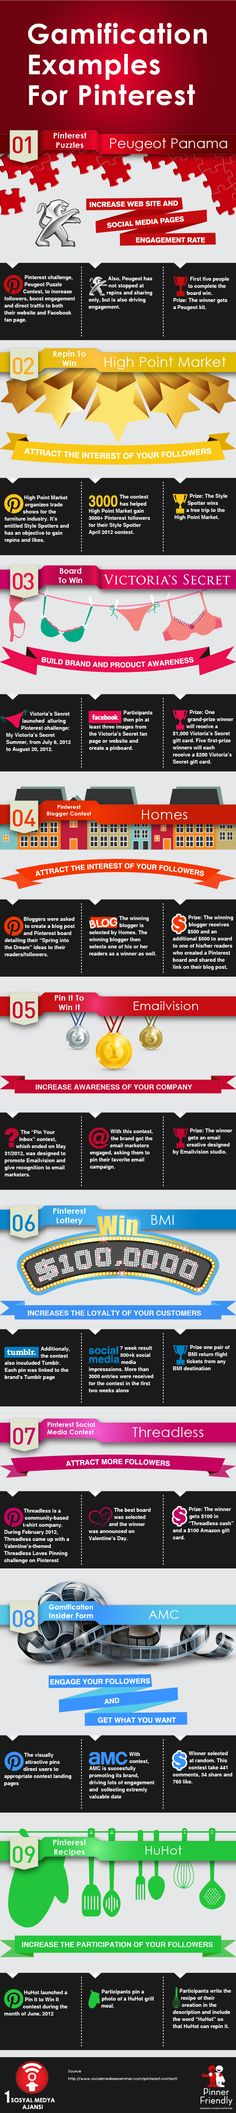 Gamification Examples for Pinterest